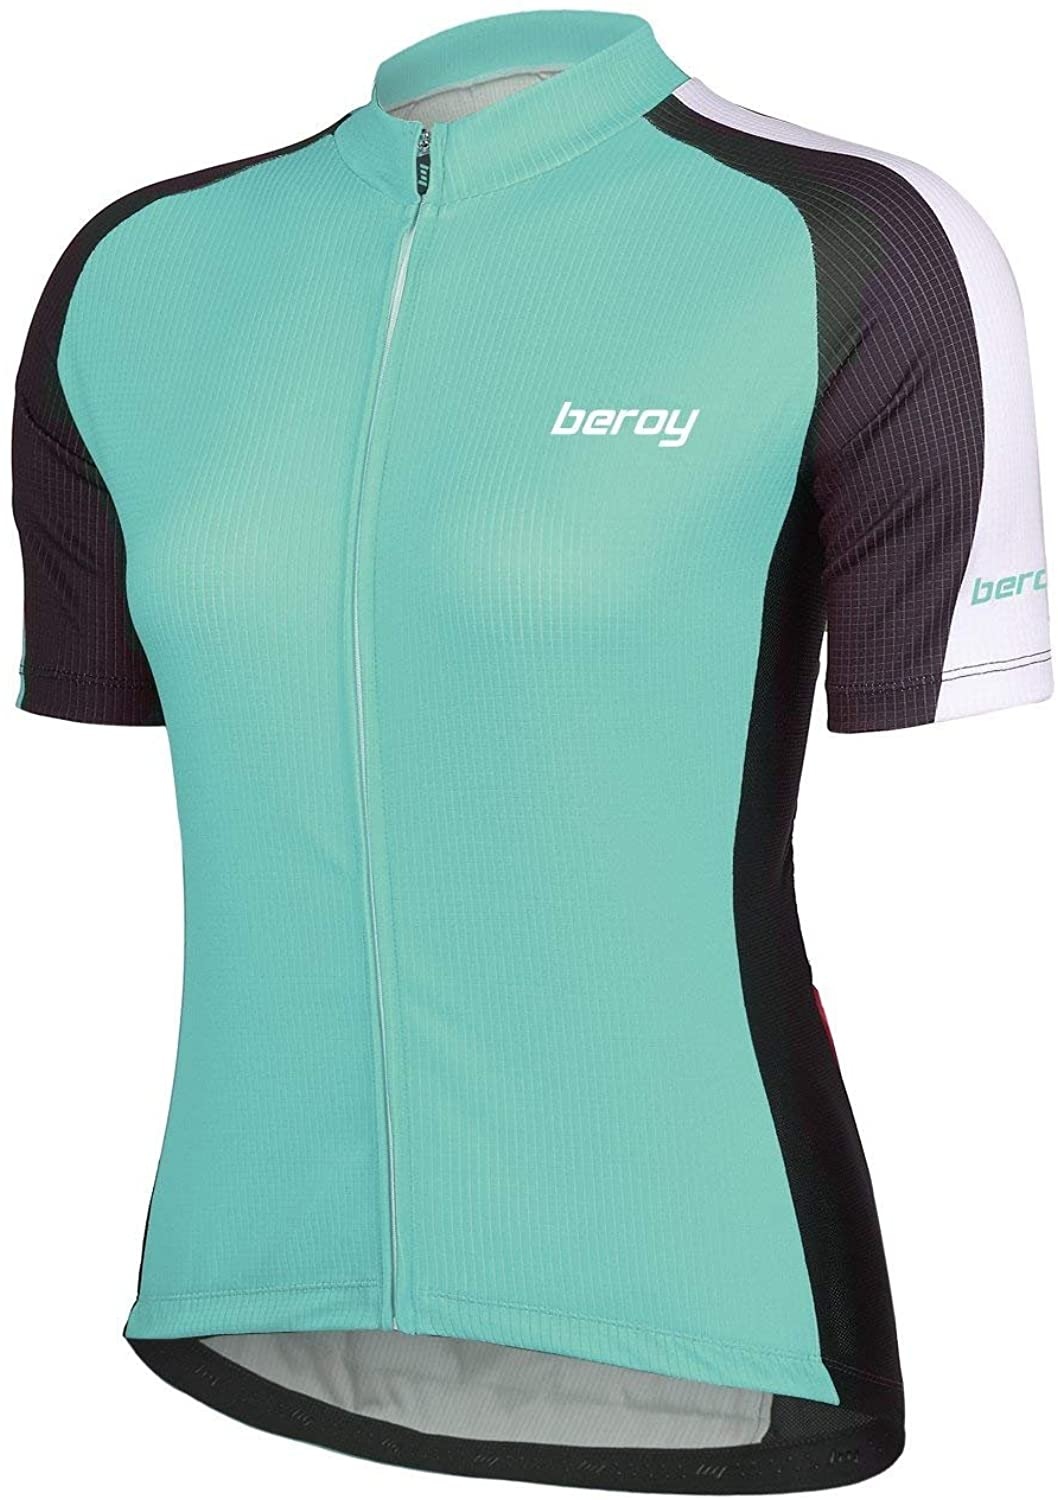 Beory Womens Cycling Jerseys with Short Sleeves,Girls Bike Short Sleeves with Three Pockets(XXXL Green)